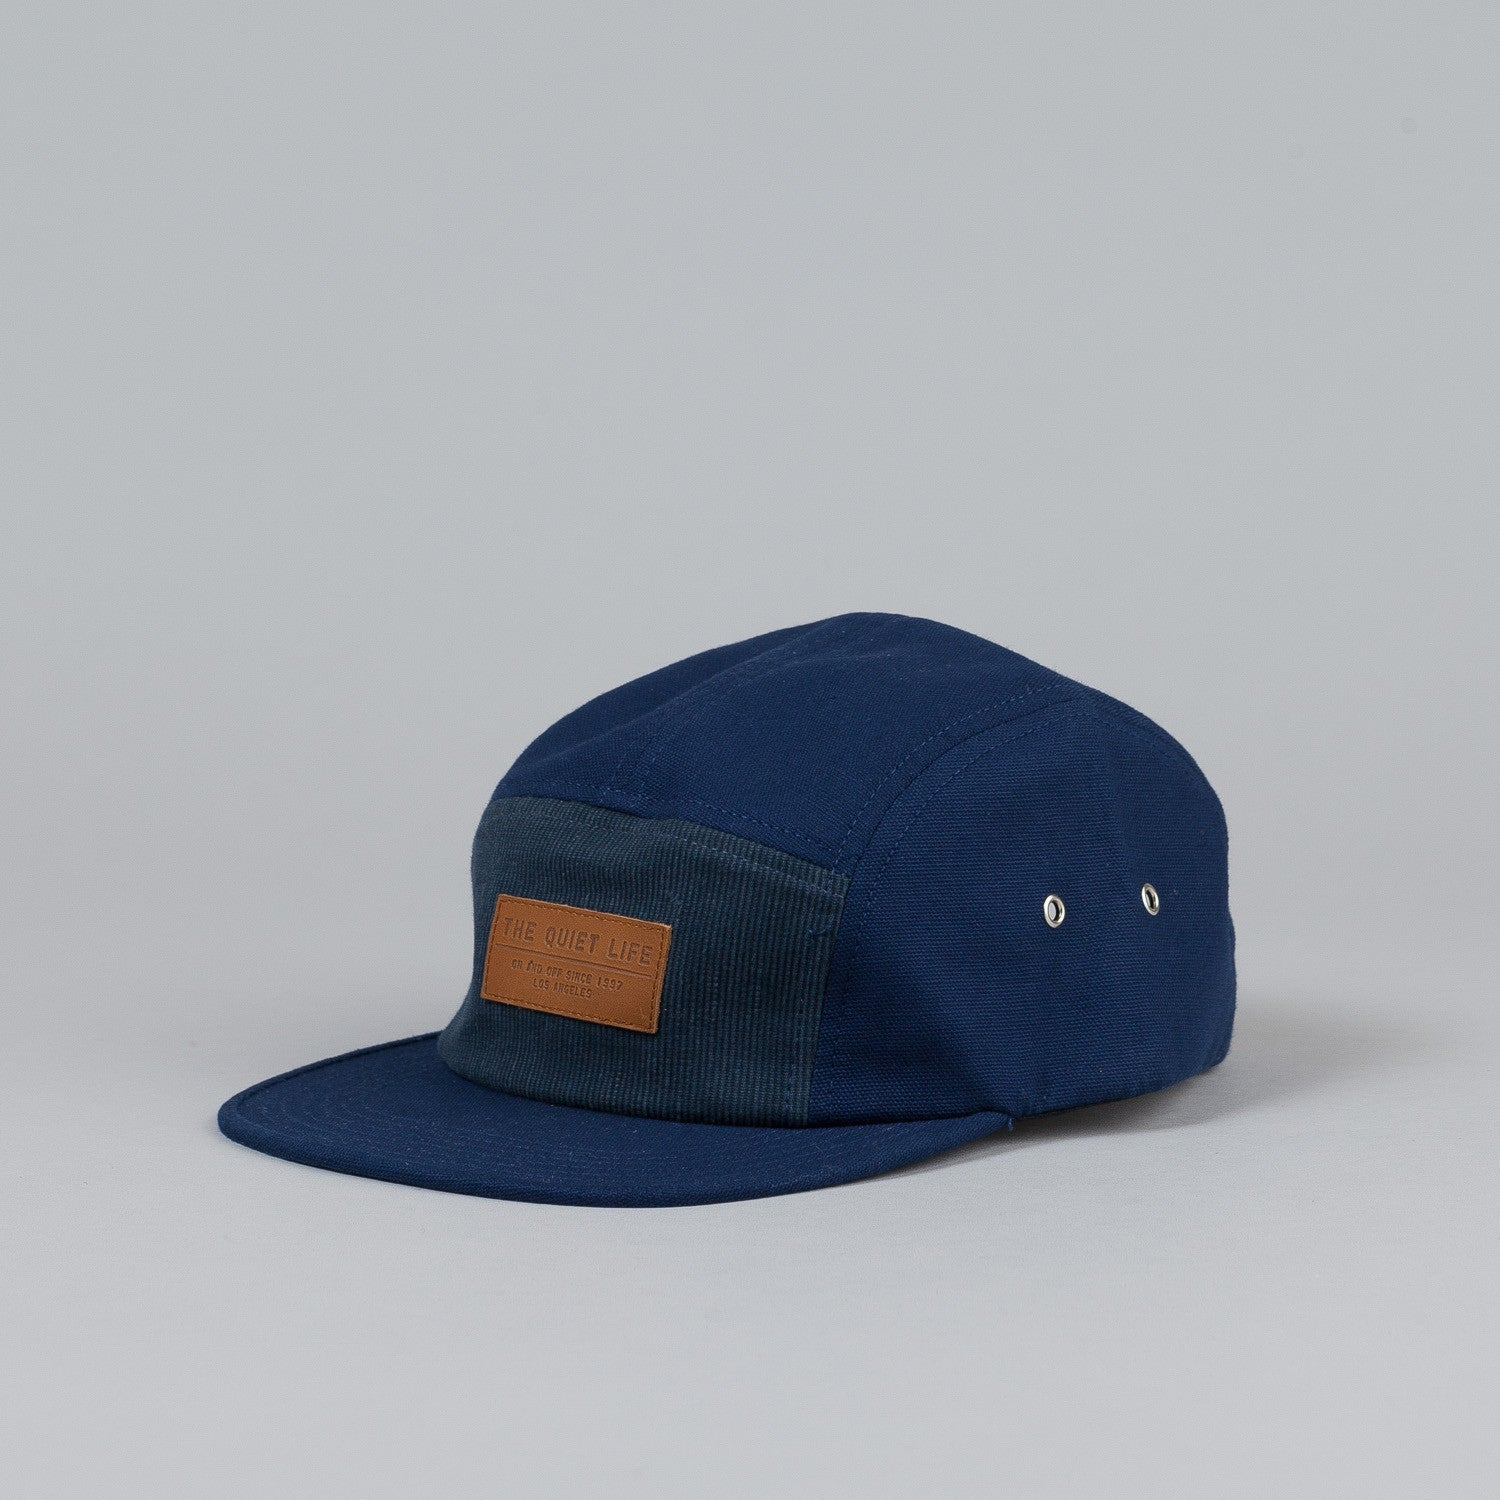 The Quiet Life Blend 5 Panel Cap Navy